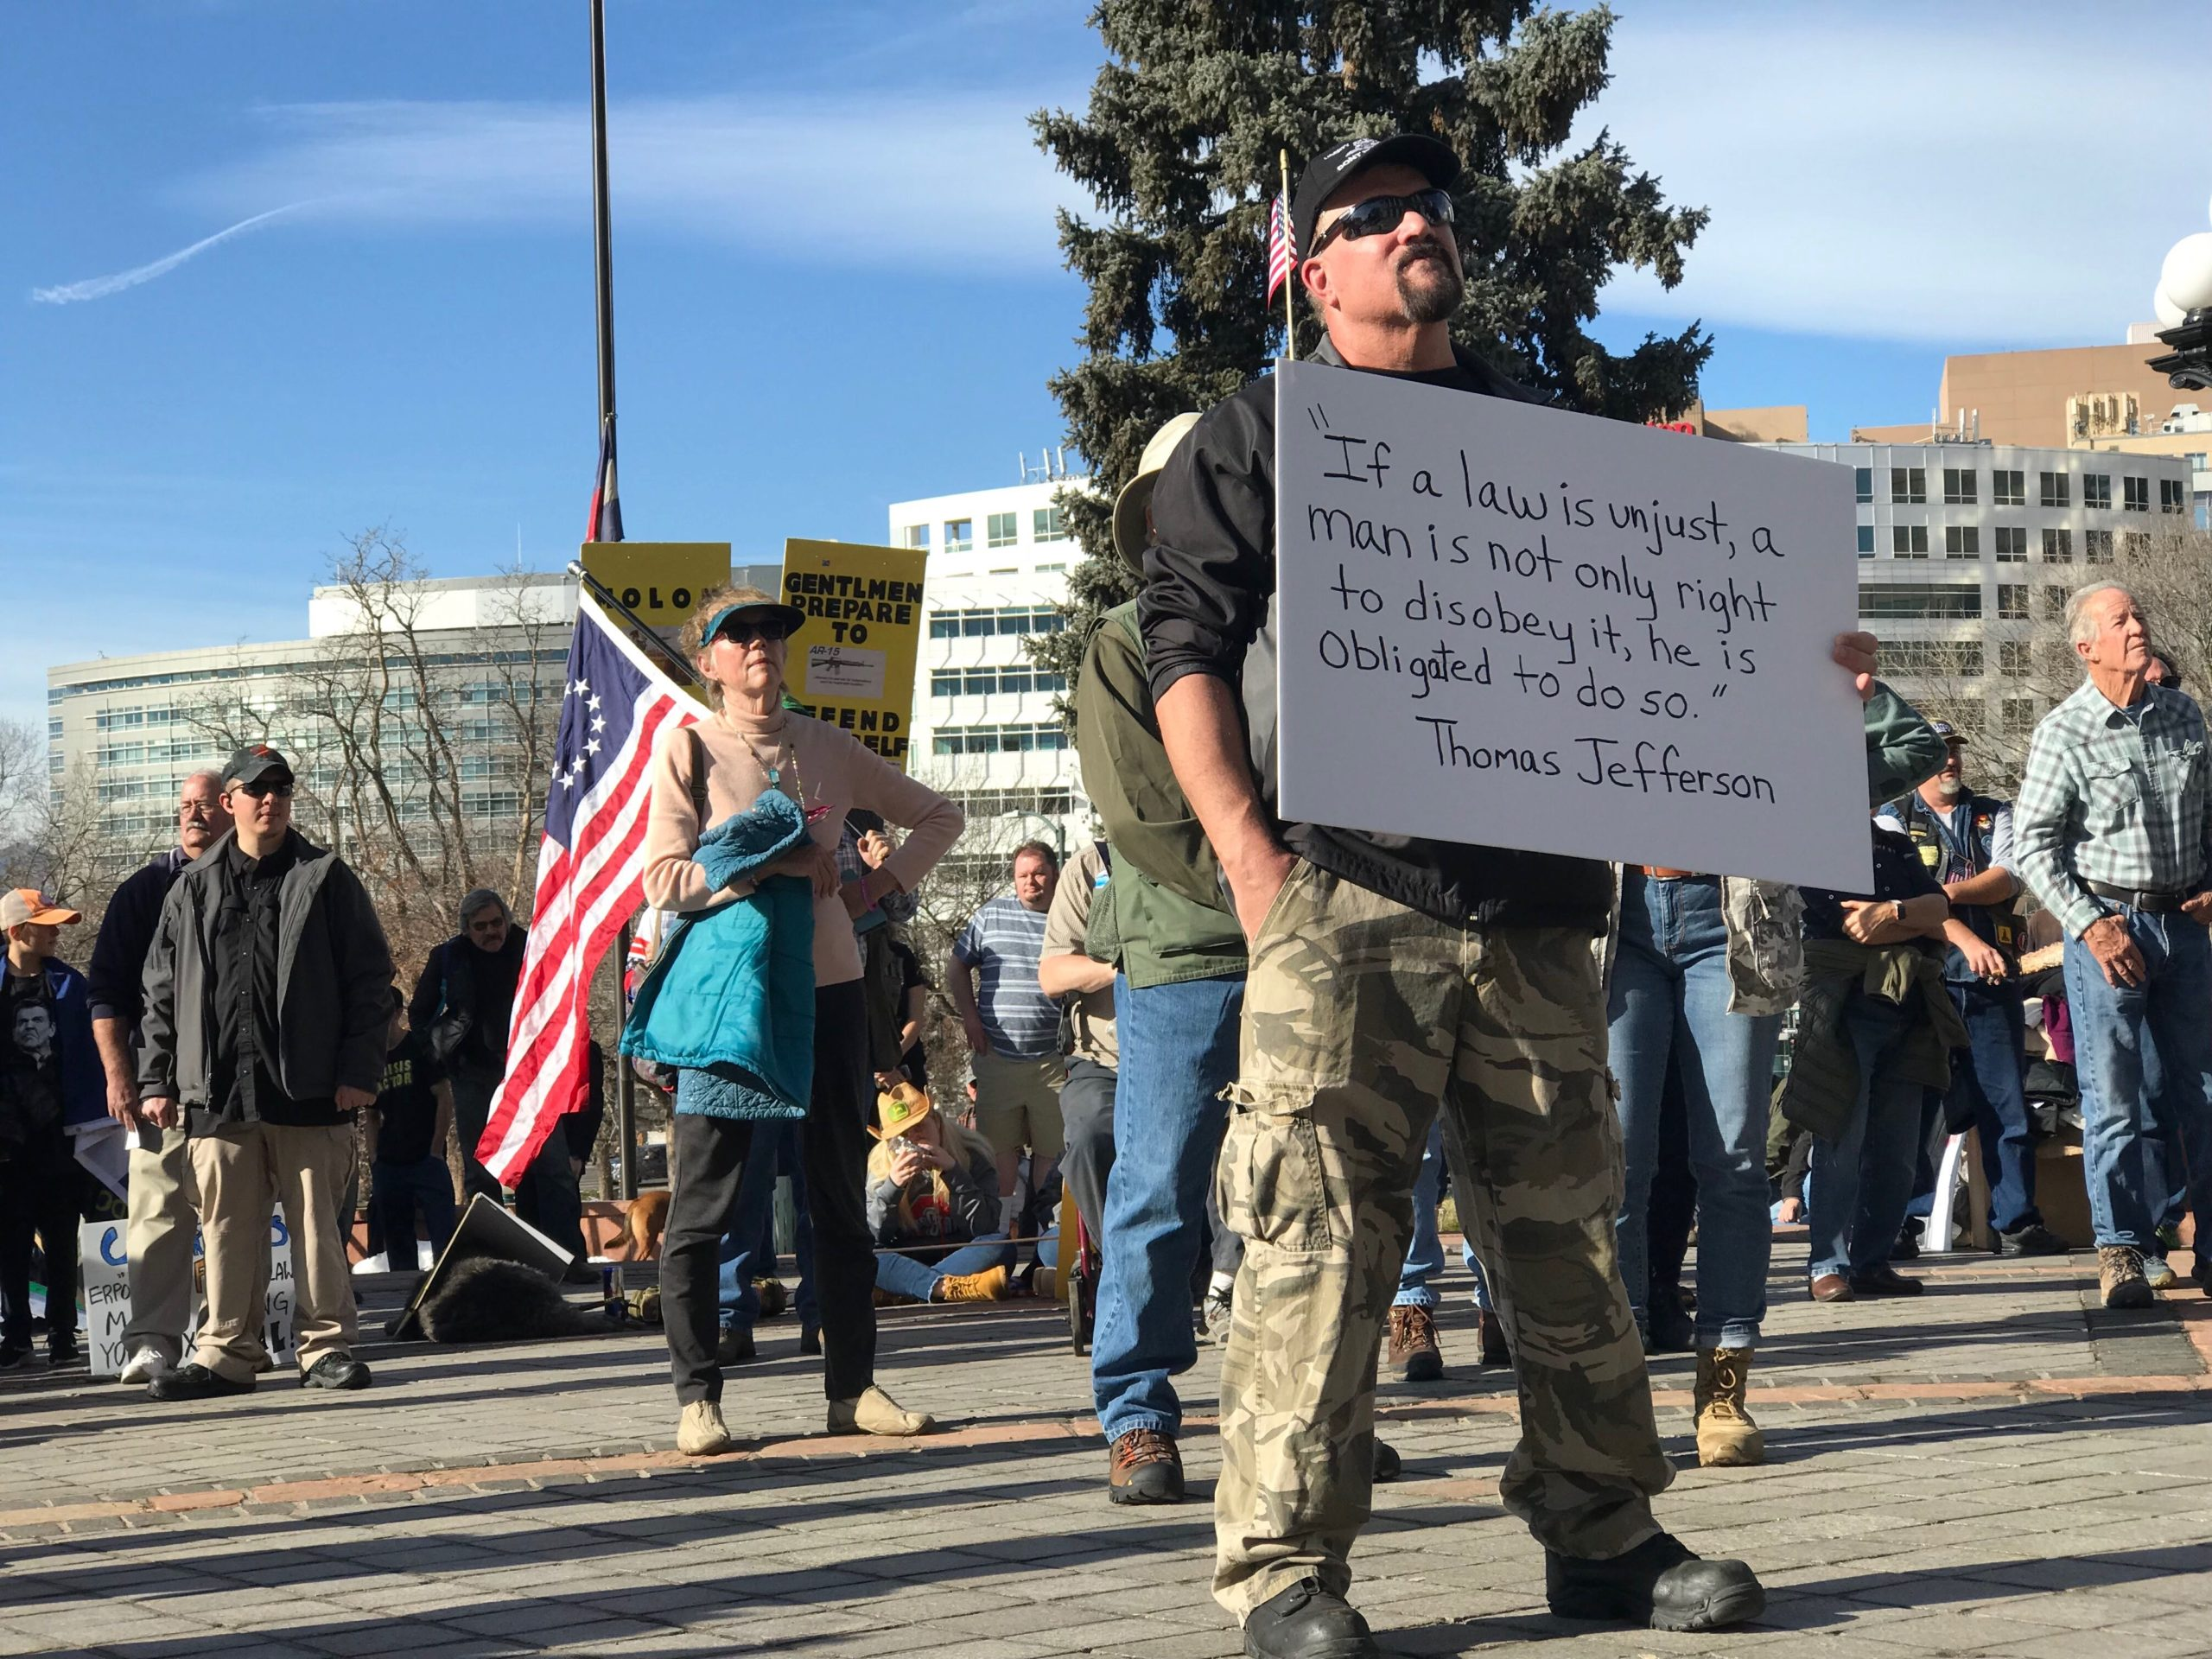 A man attend a gun rights rally at the Colorado State Capitol on Saturday, Dec. 7, 2019.